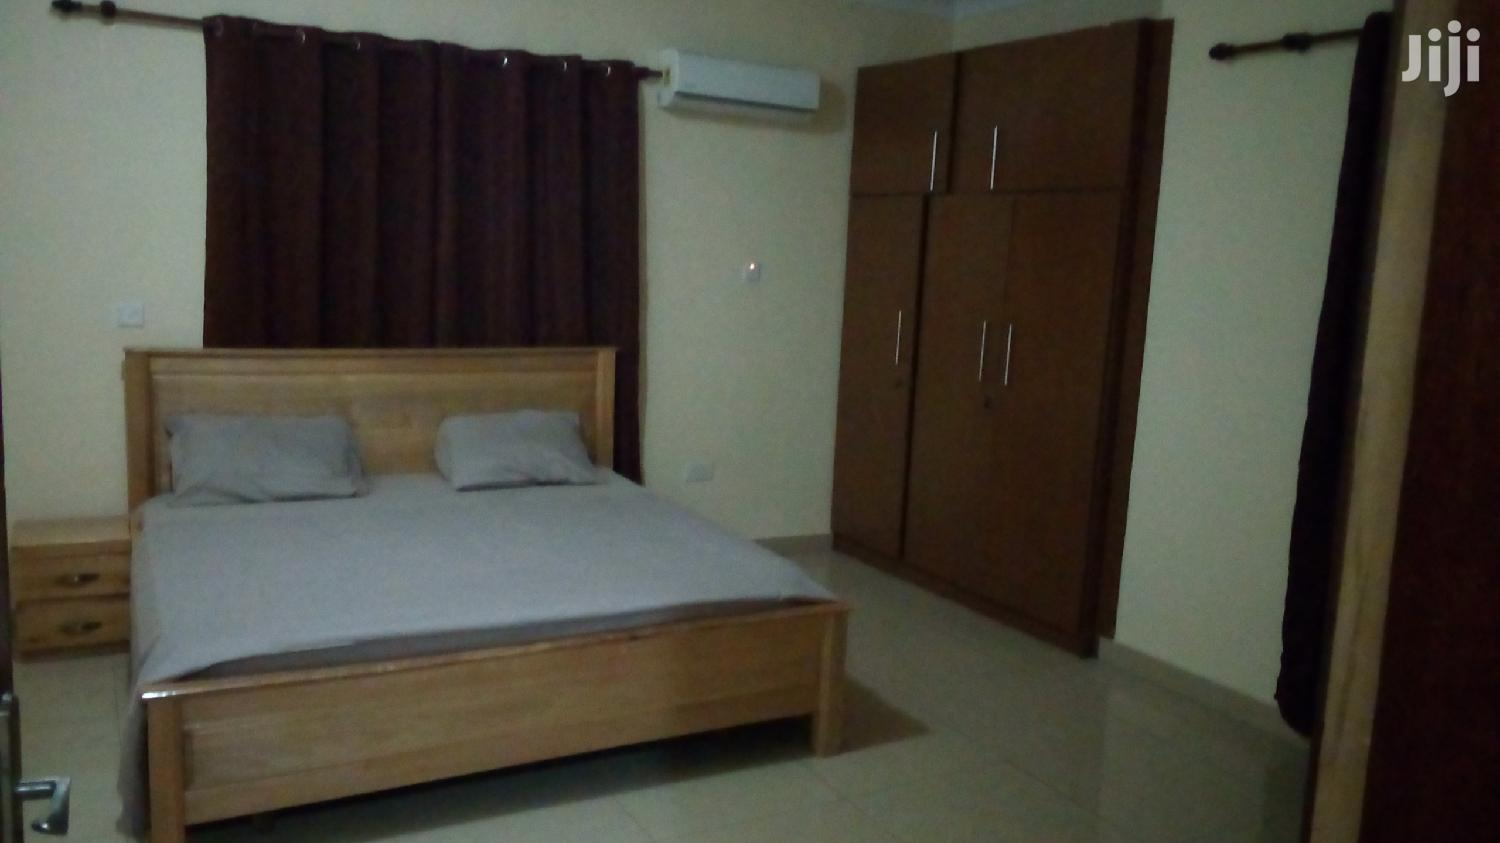 2 Bedroom Furnished | Houses & Apartments For Rent for sale in East Legon, Greater Accra, Ghana